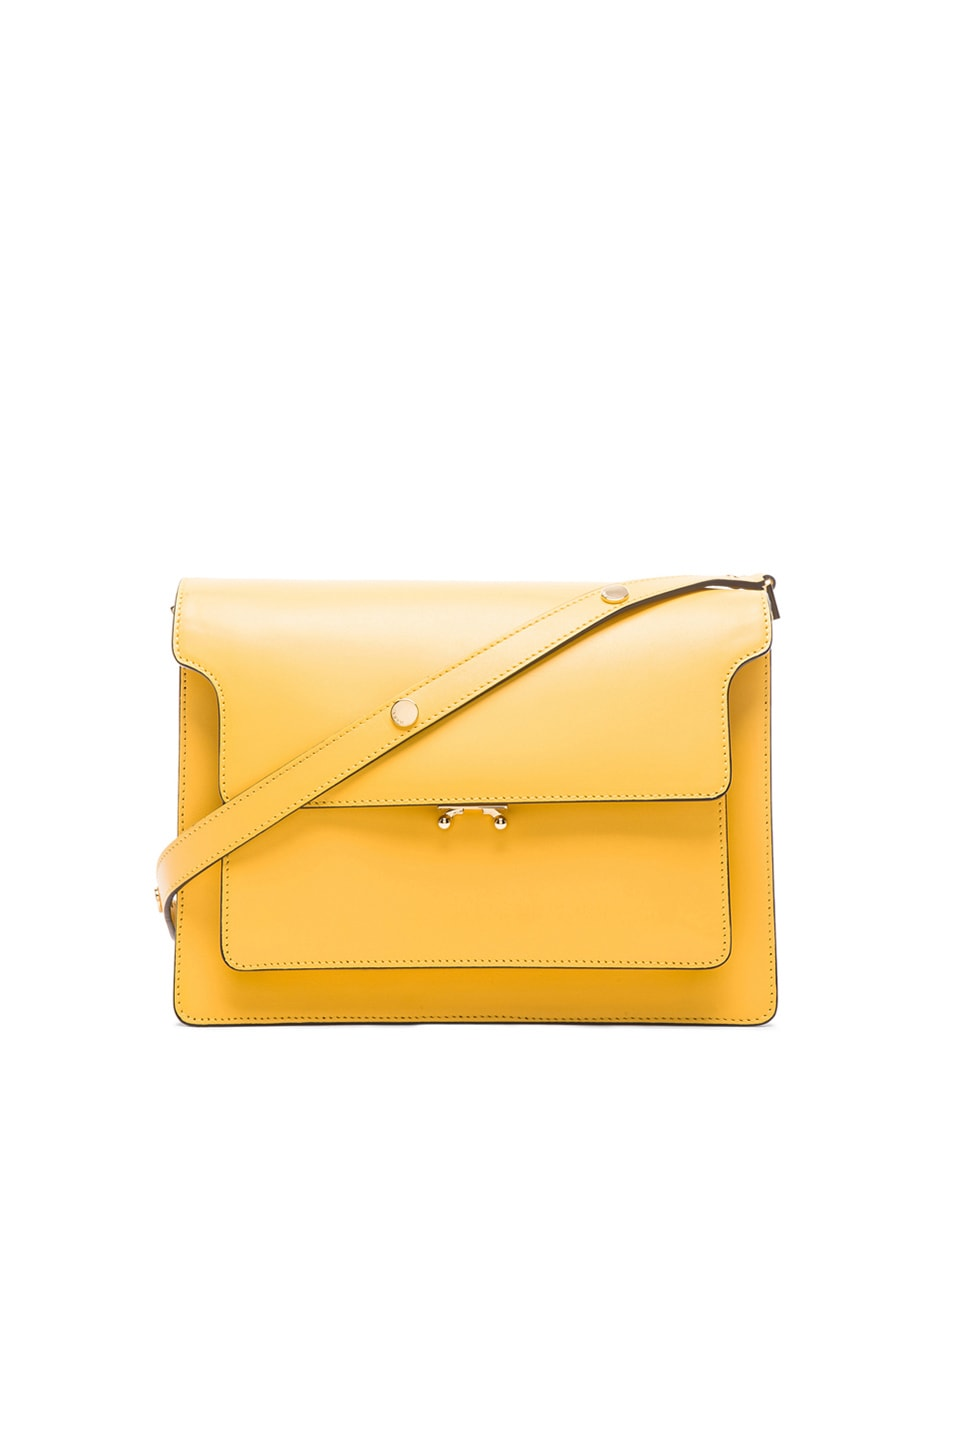 Image 1 of Marni Leather Shoulder Bag in Maize